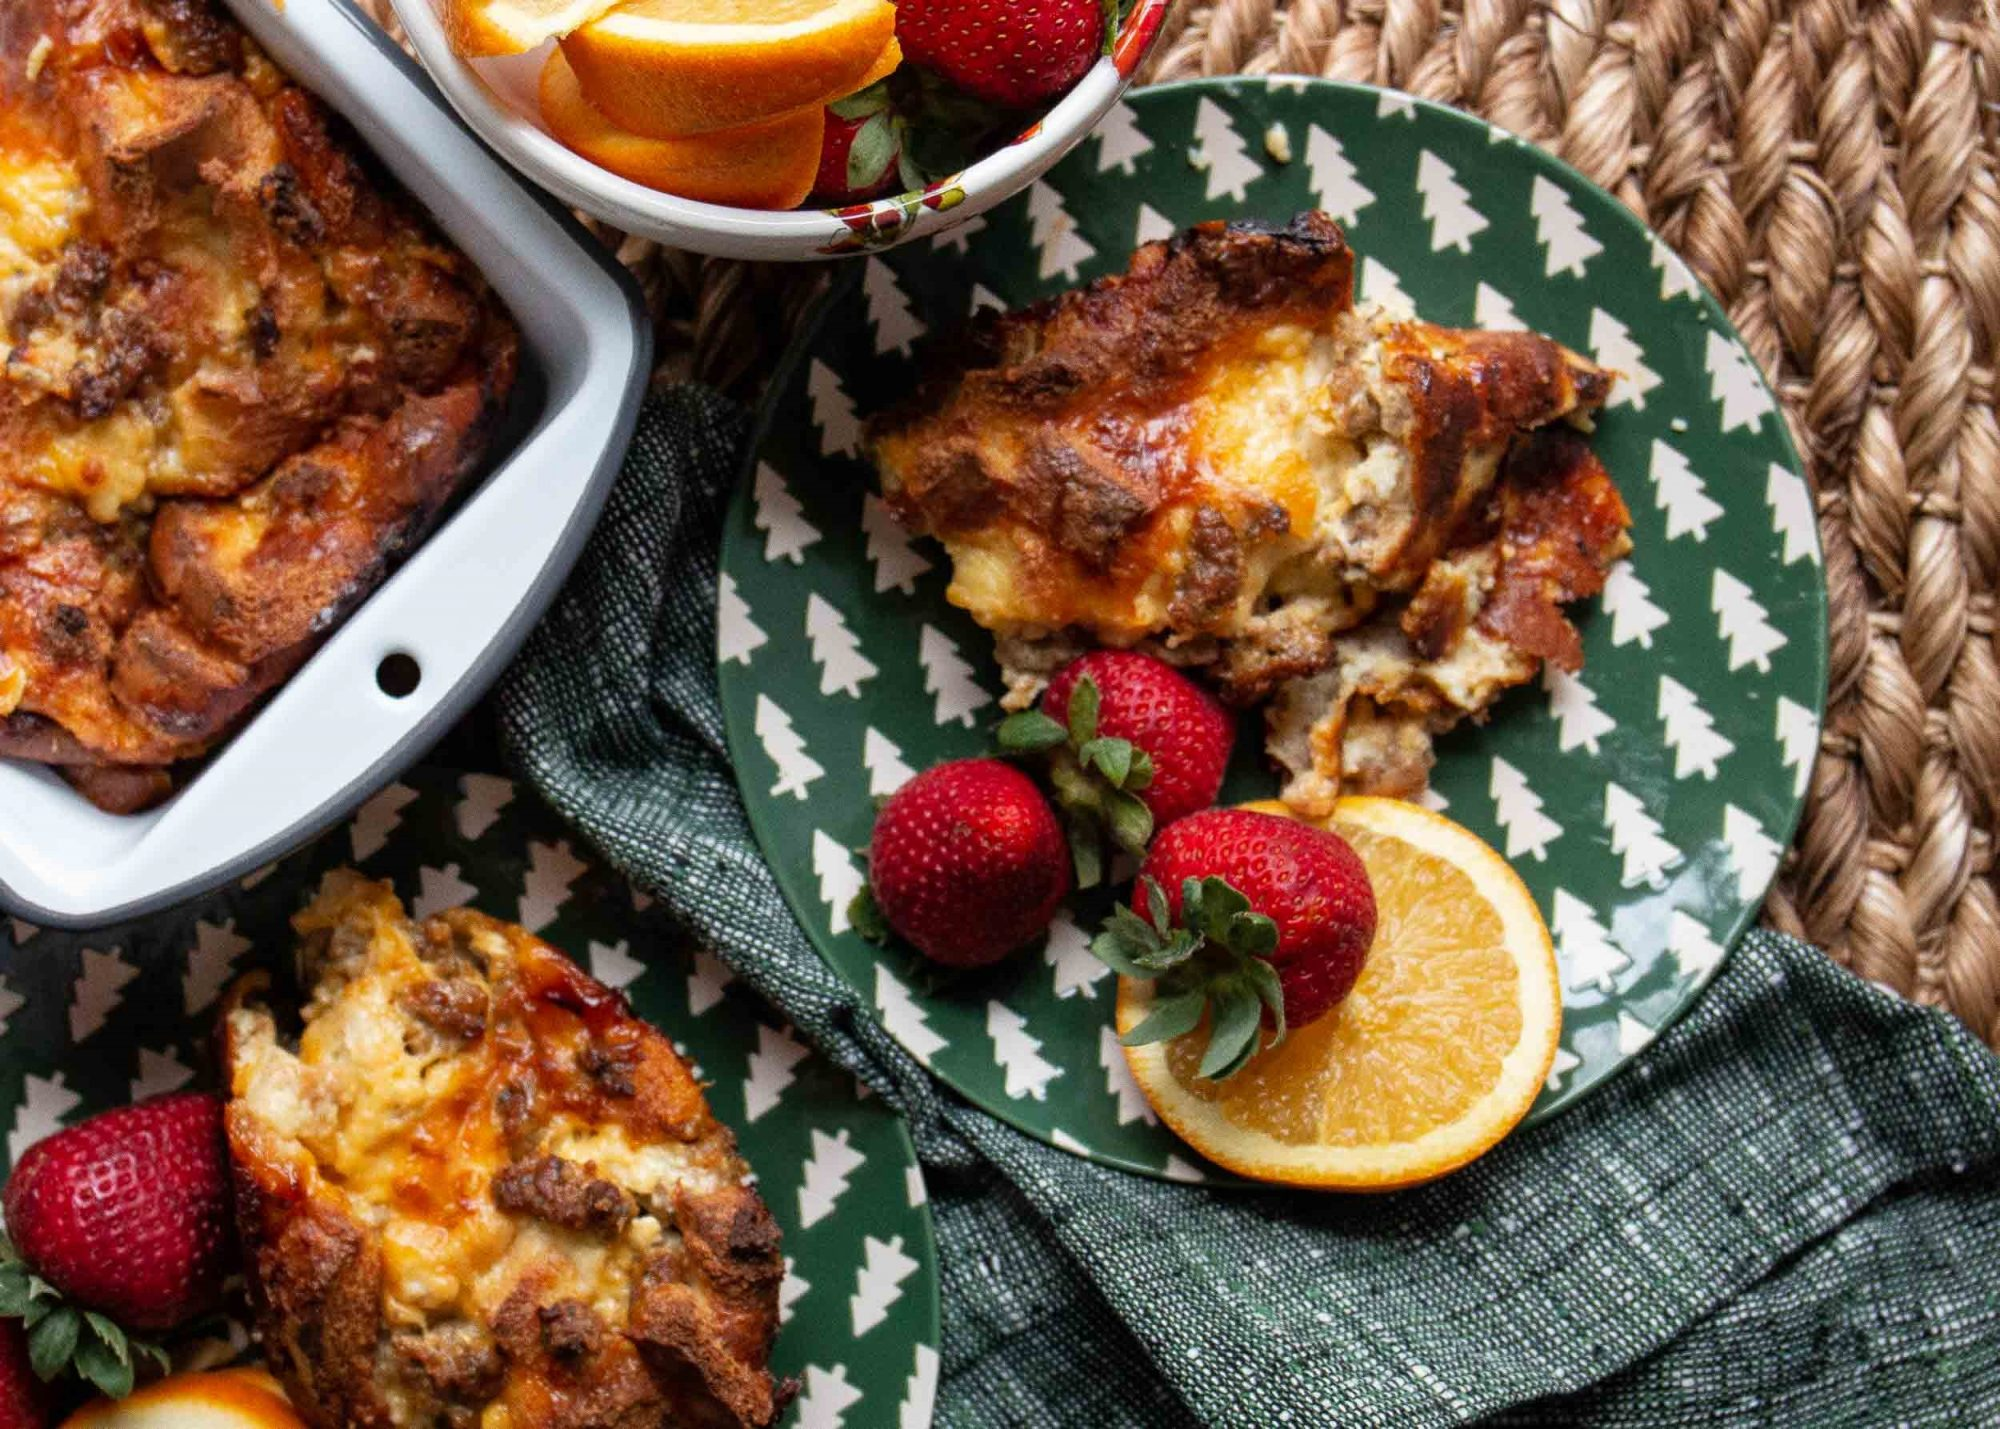 breakfast sausage casserole with strawberries and orages